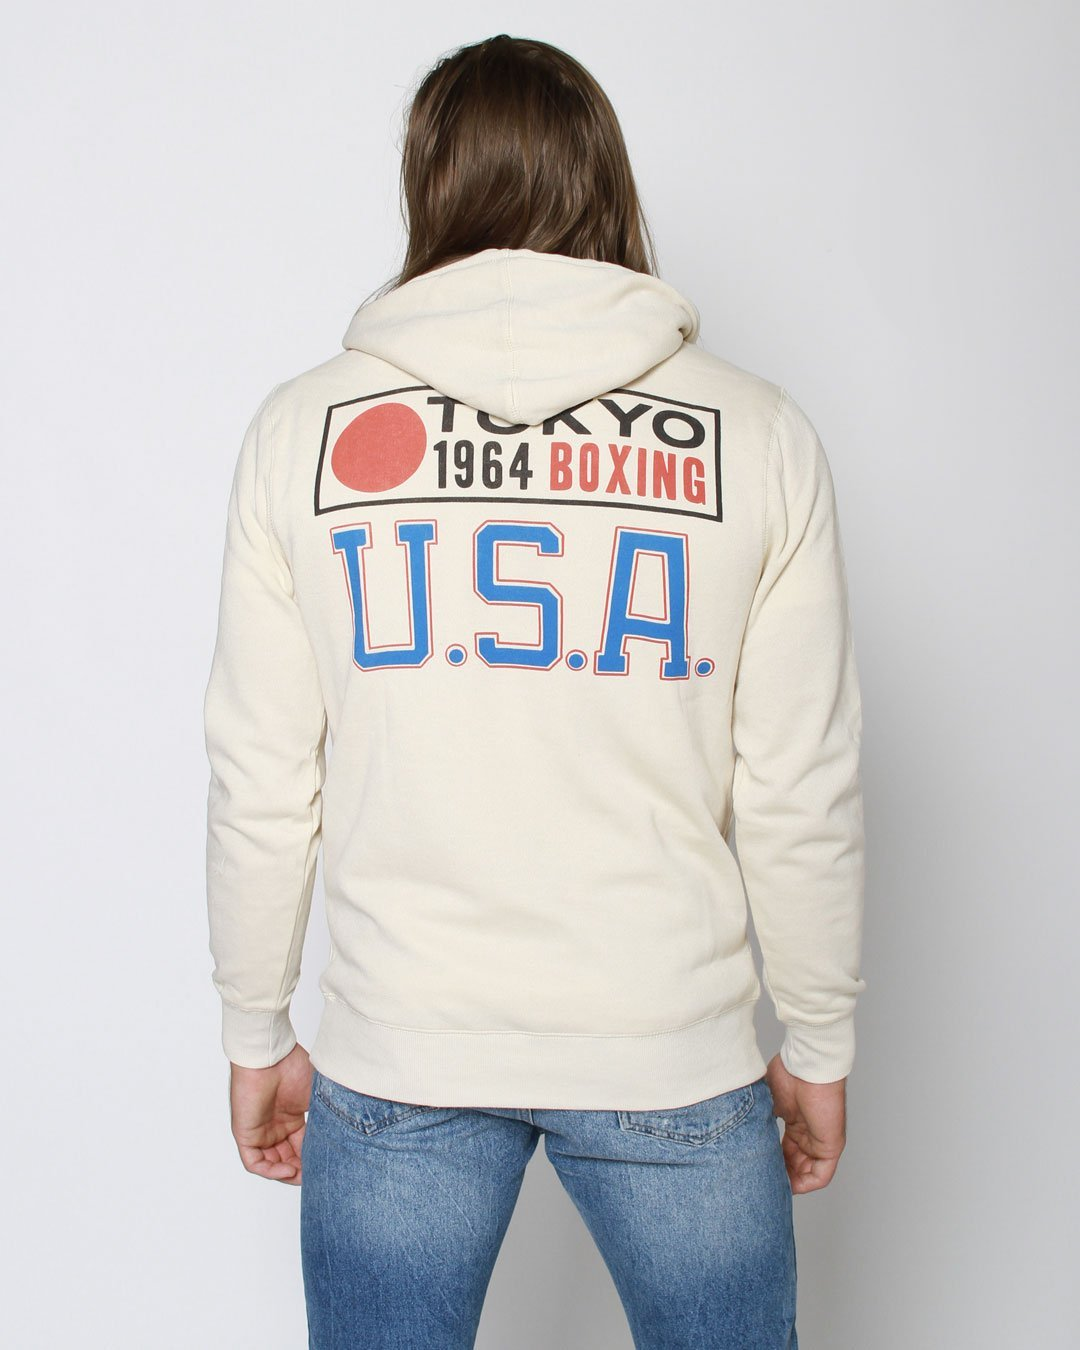 Joe Frazier Boxing USA Pullover Hoody